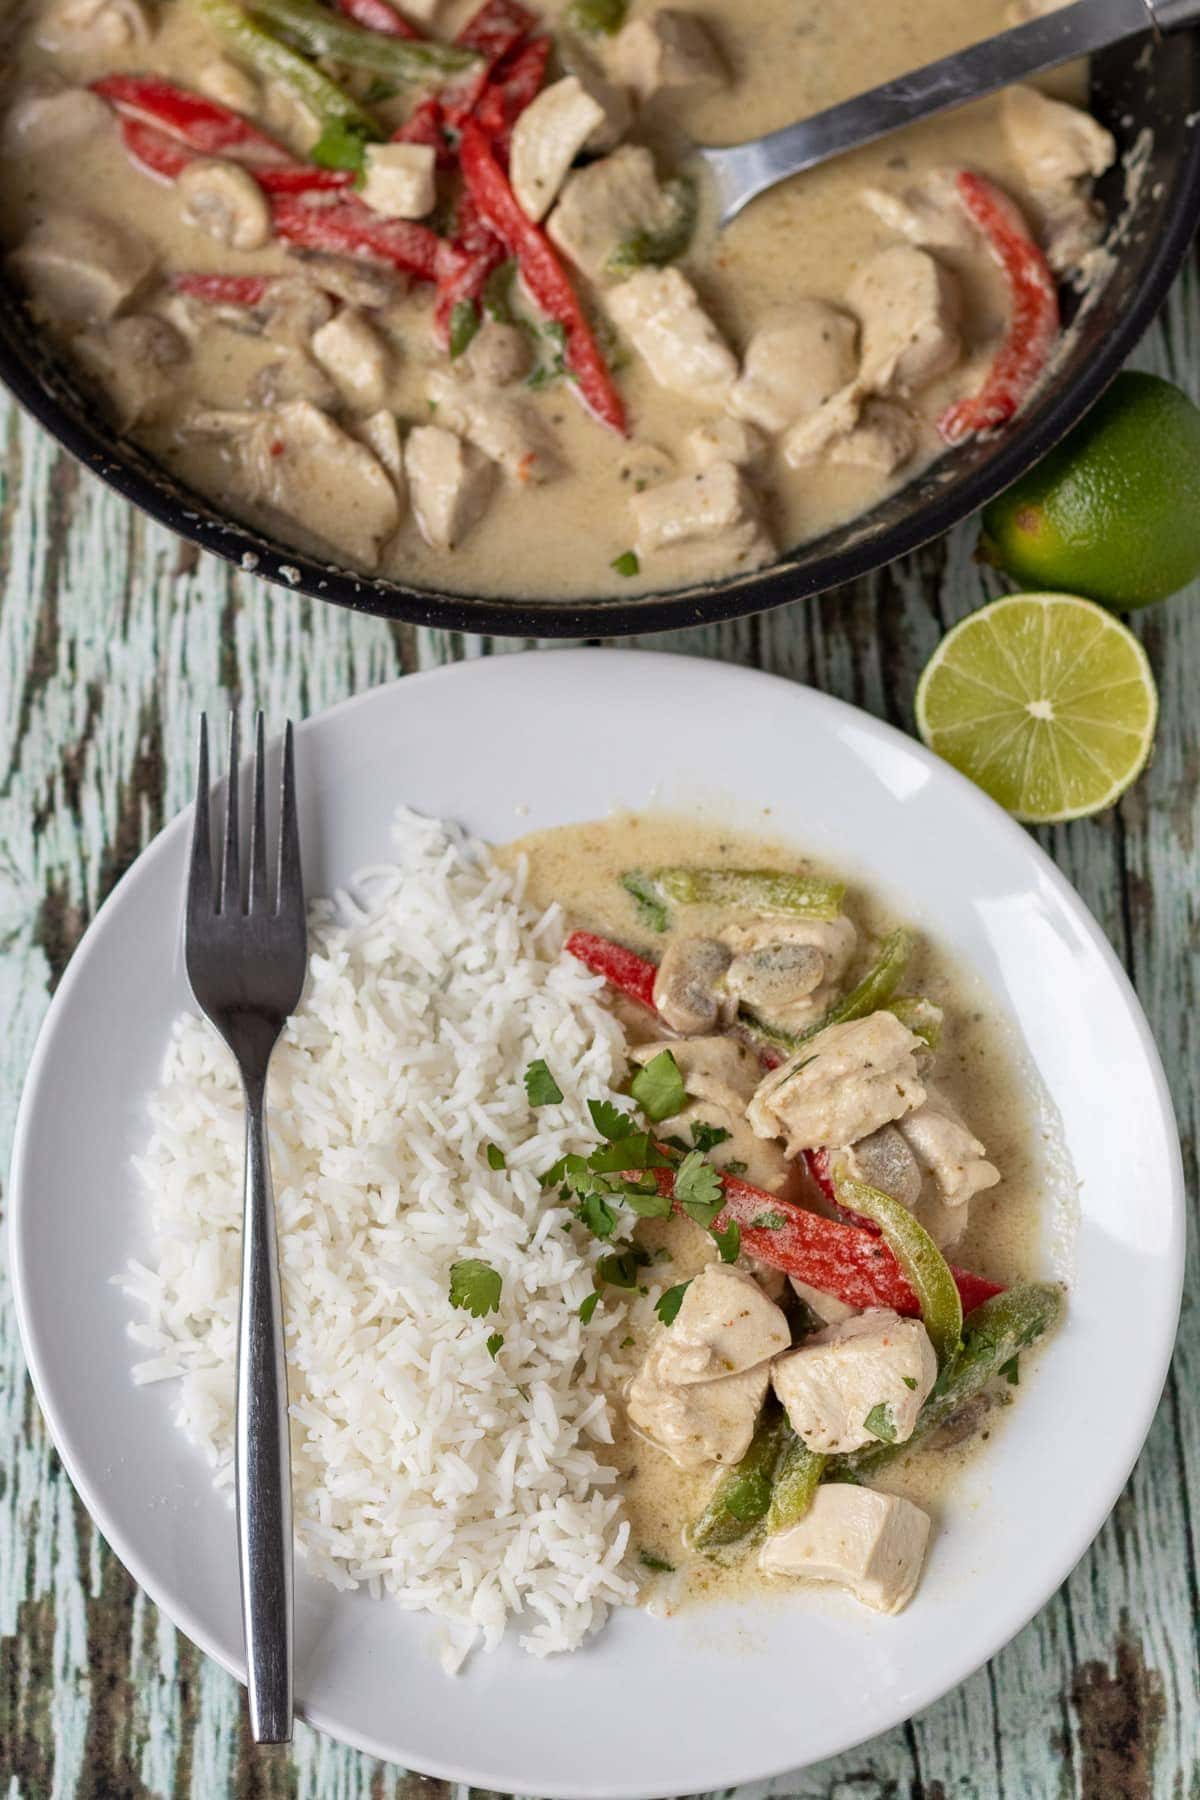 Birds eye view of a plate of Thai chicken curry served with basmati rice at the bottom. Pan of cooked green curry at the top.